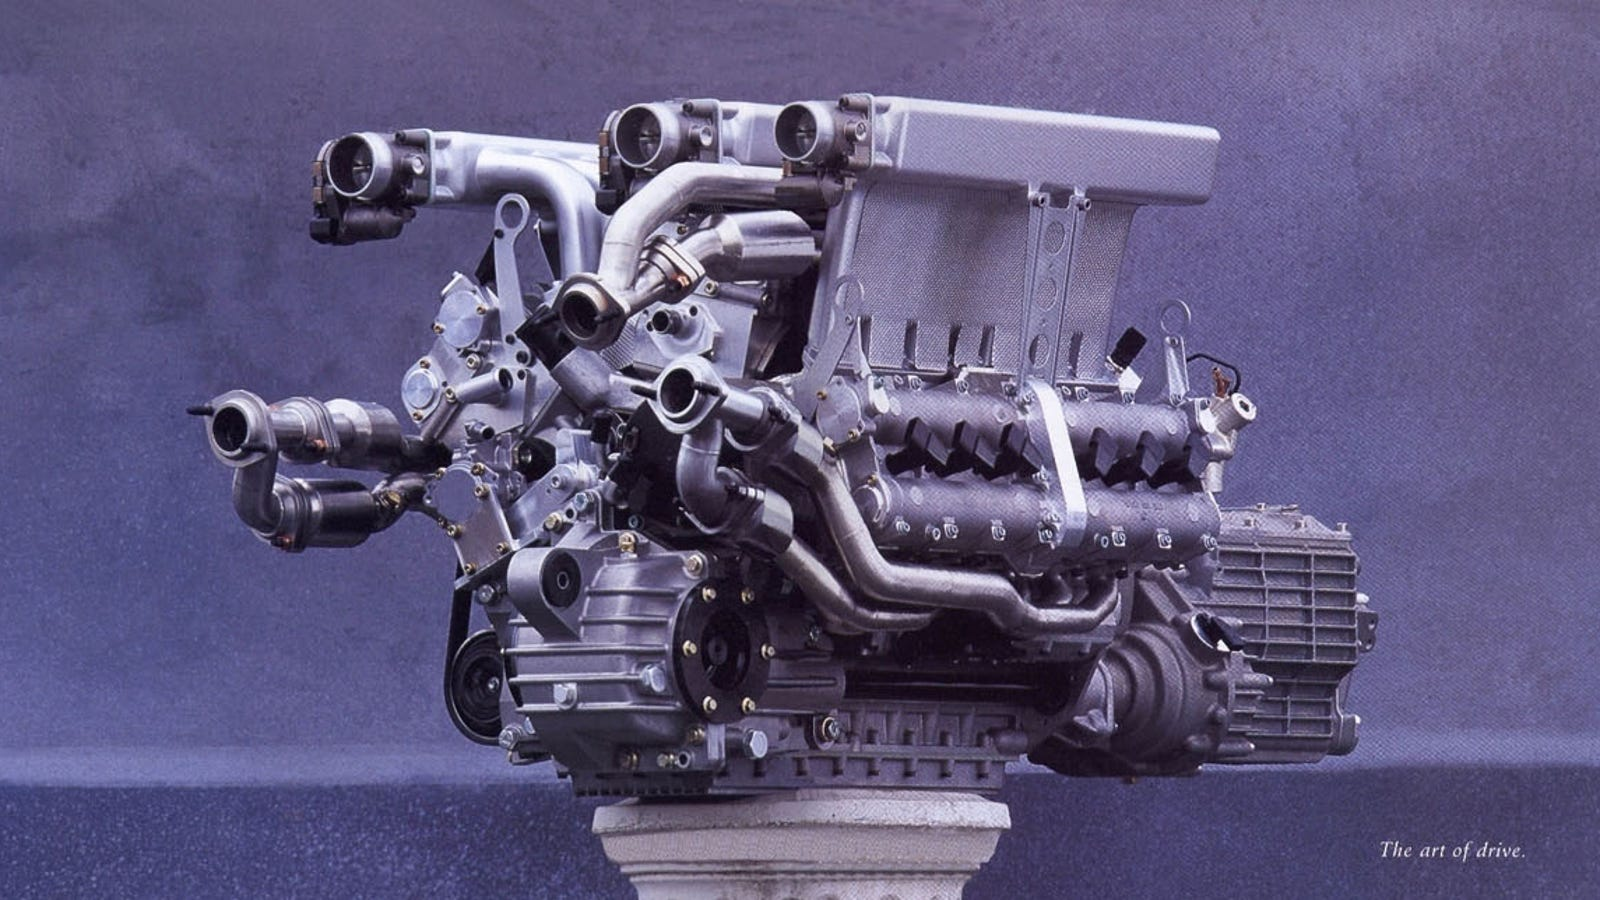 Volkswagen Made An Even Weirder Engine Before The Bugatti W16 Veyron Diagram